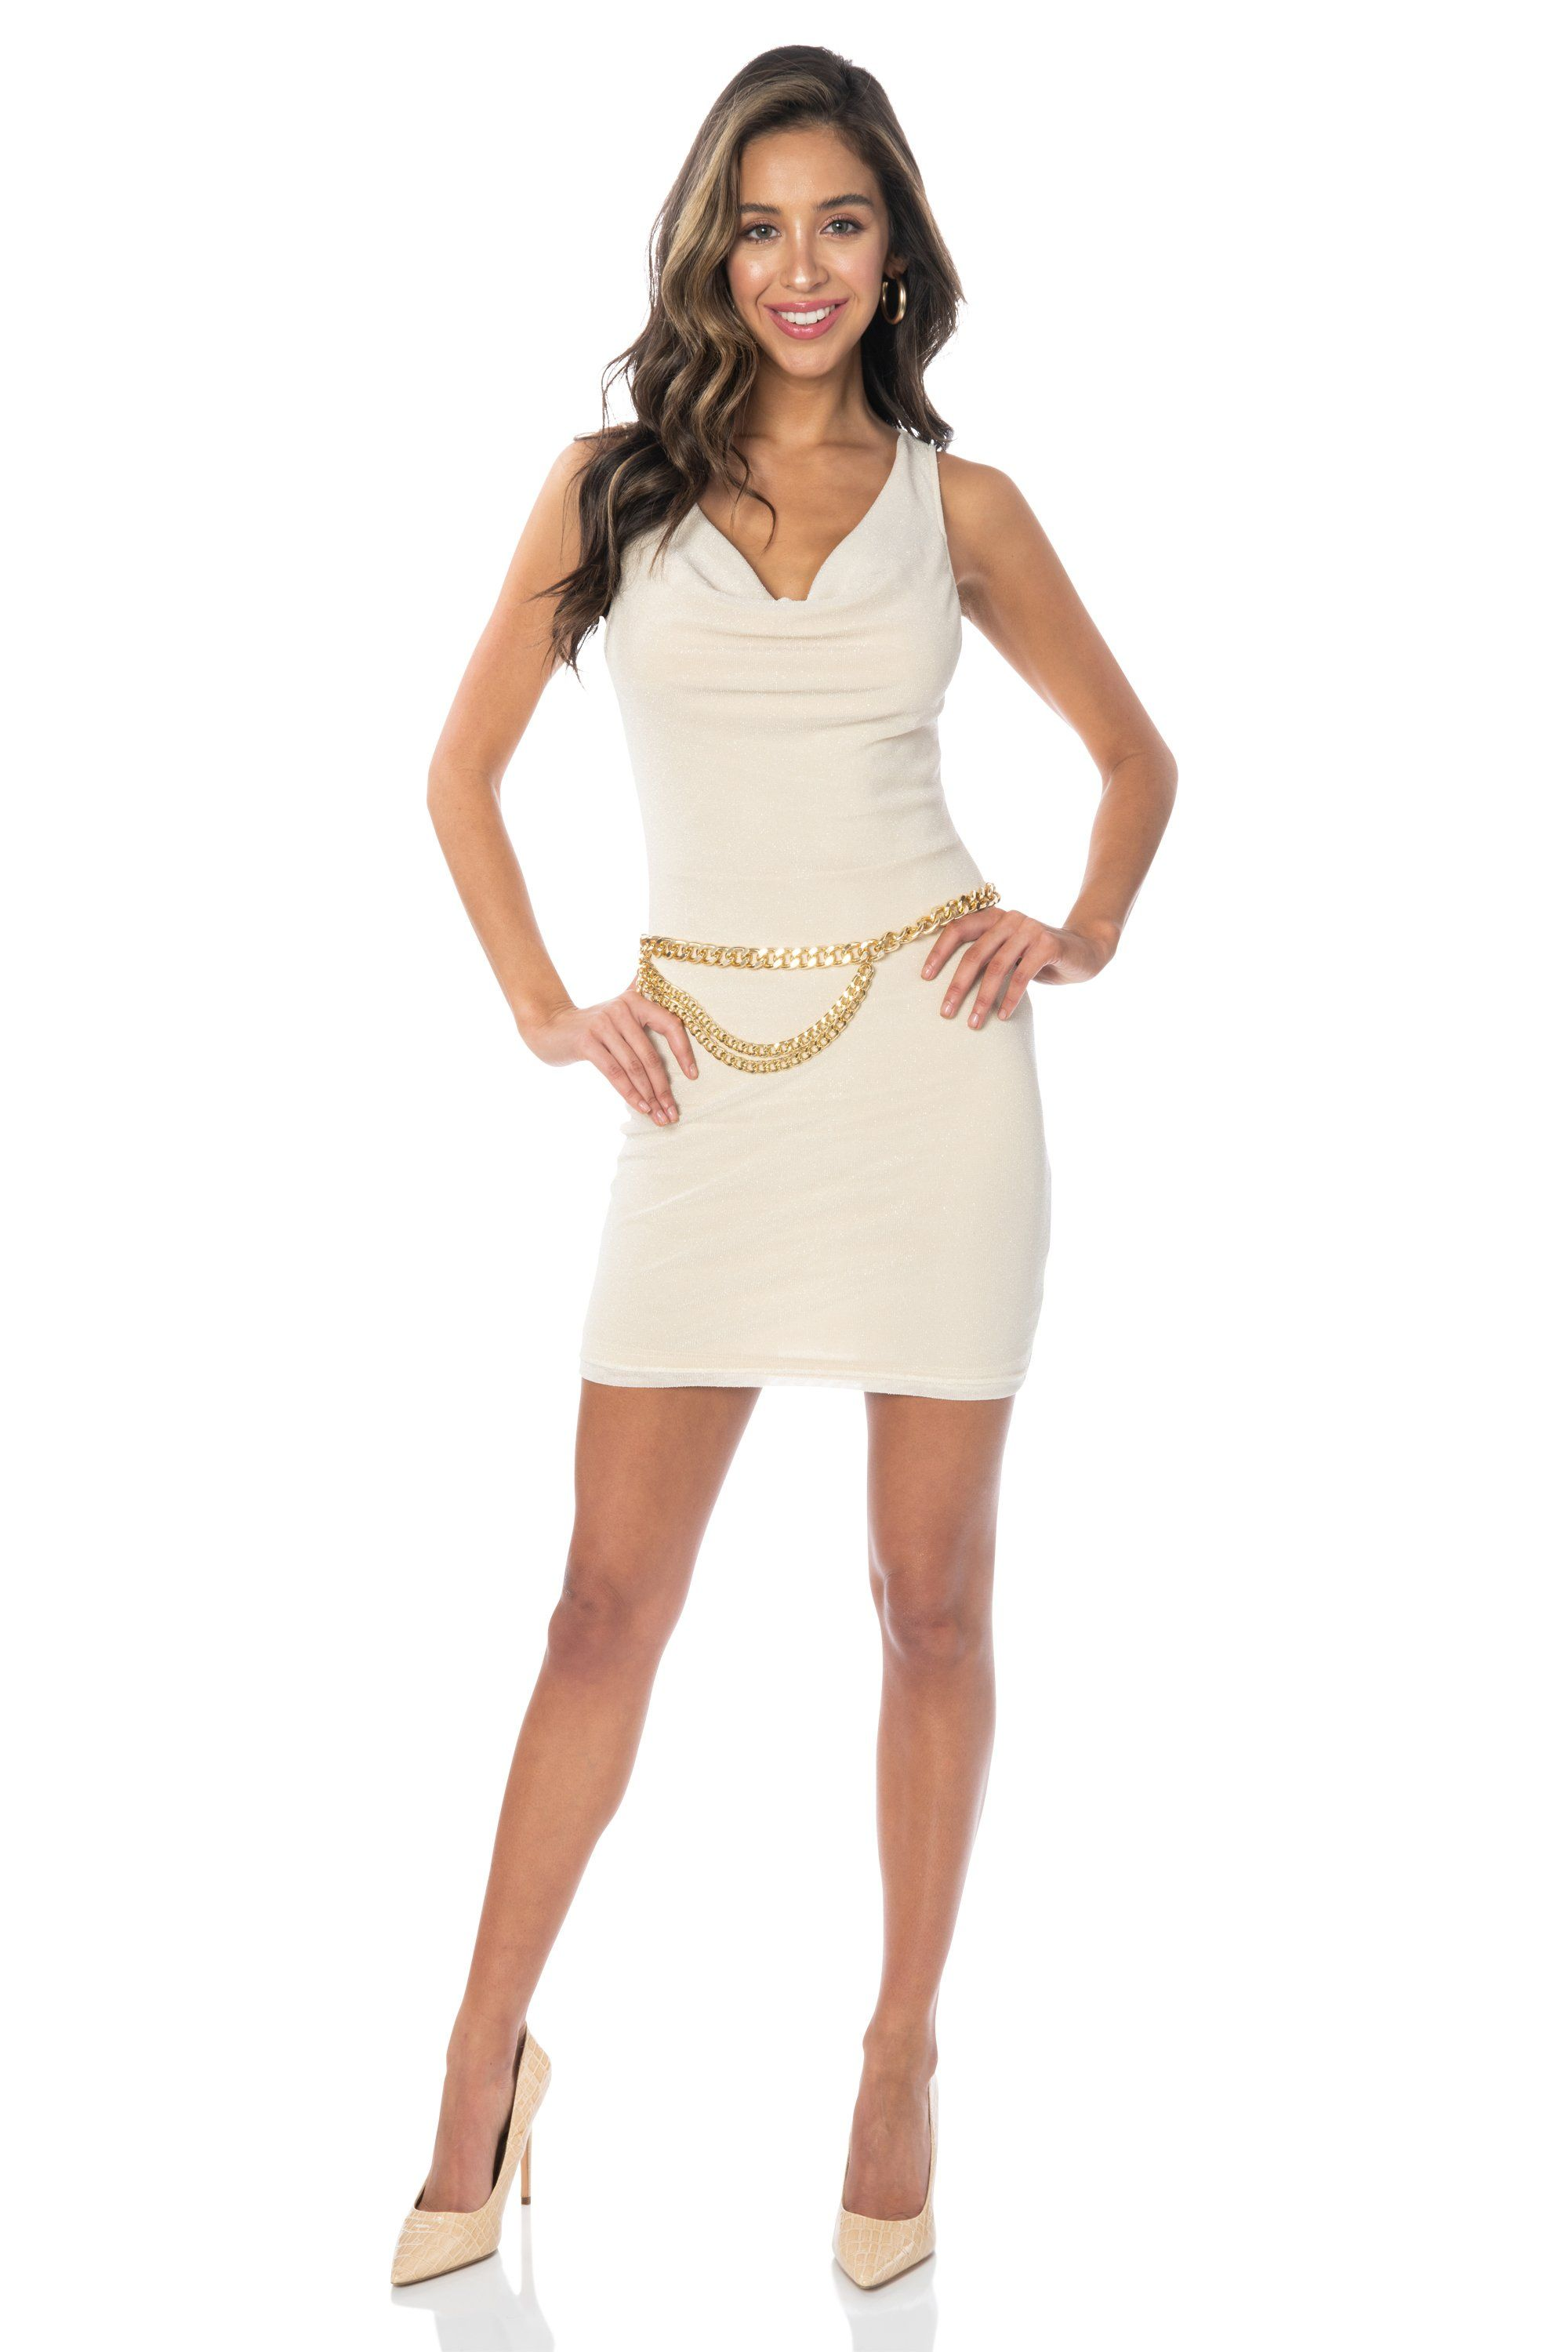 Brasilera Mini Beige Dress - FINAL SALE Dresses HYPEACH BOUTIQUE